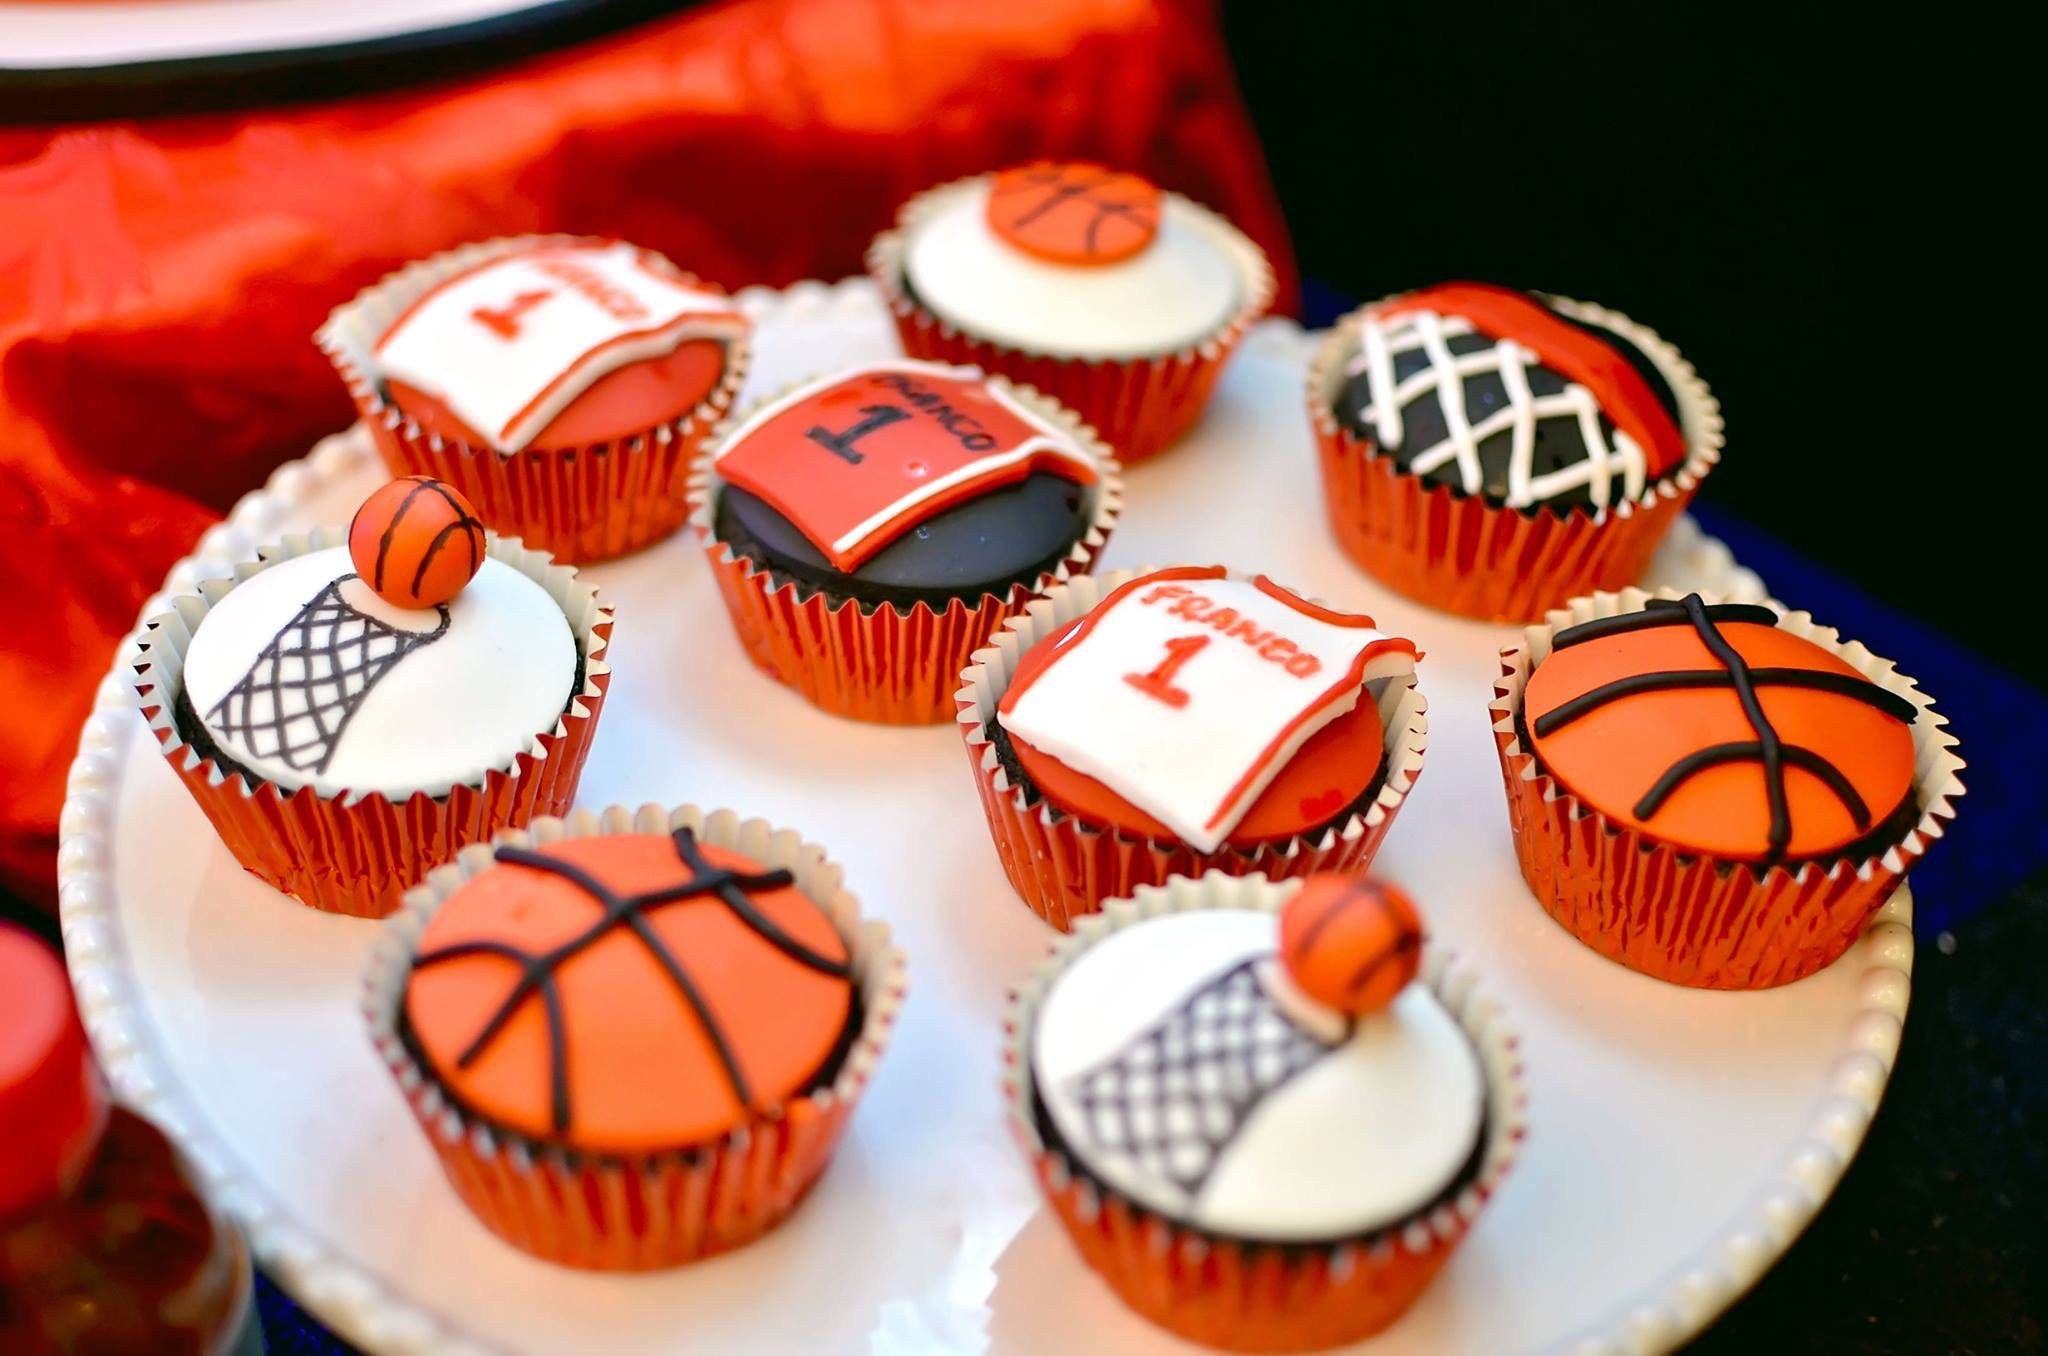 Pleasing Francos Basketball Themed Party 1St Birthday With Images Funny Birthday Cards Online Benoljebrpdamsfinfo